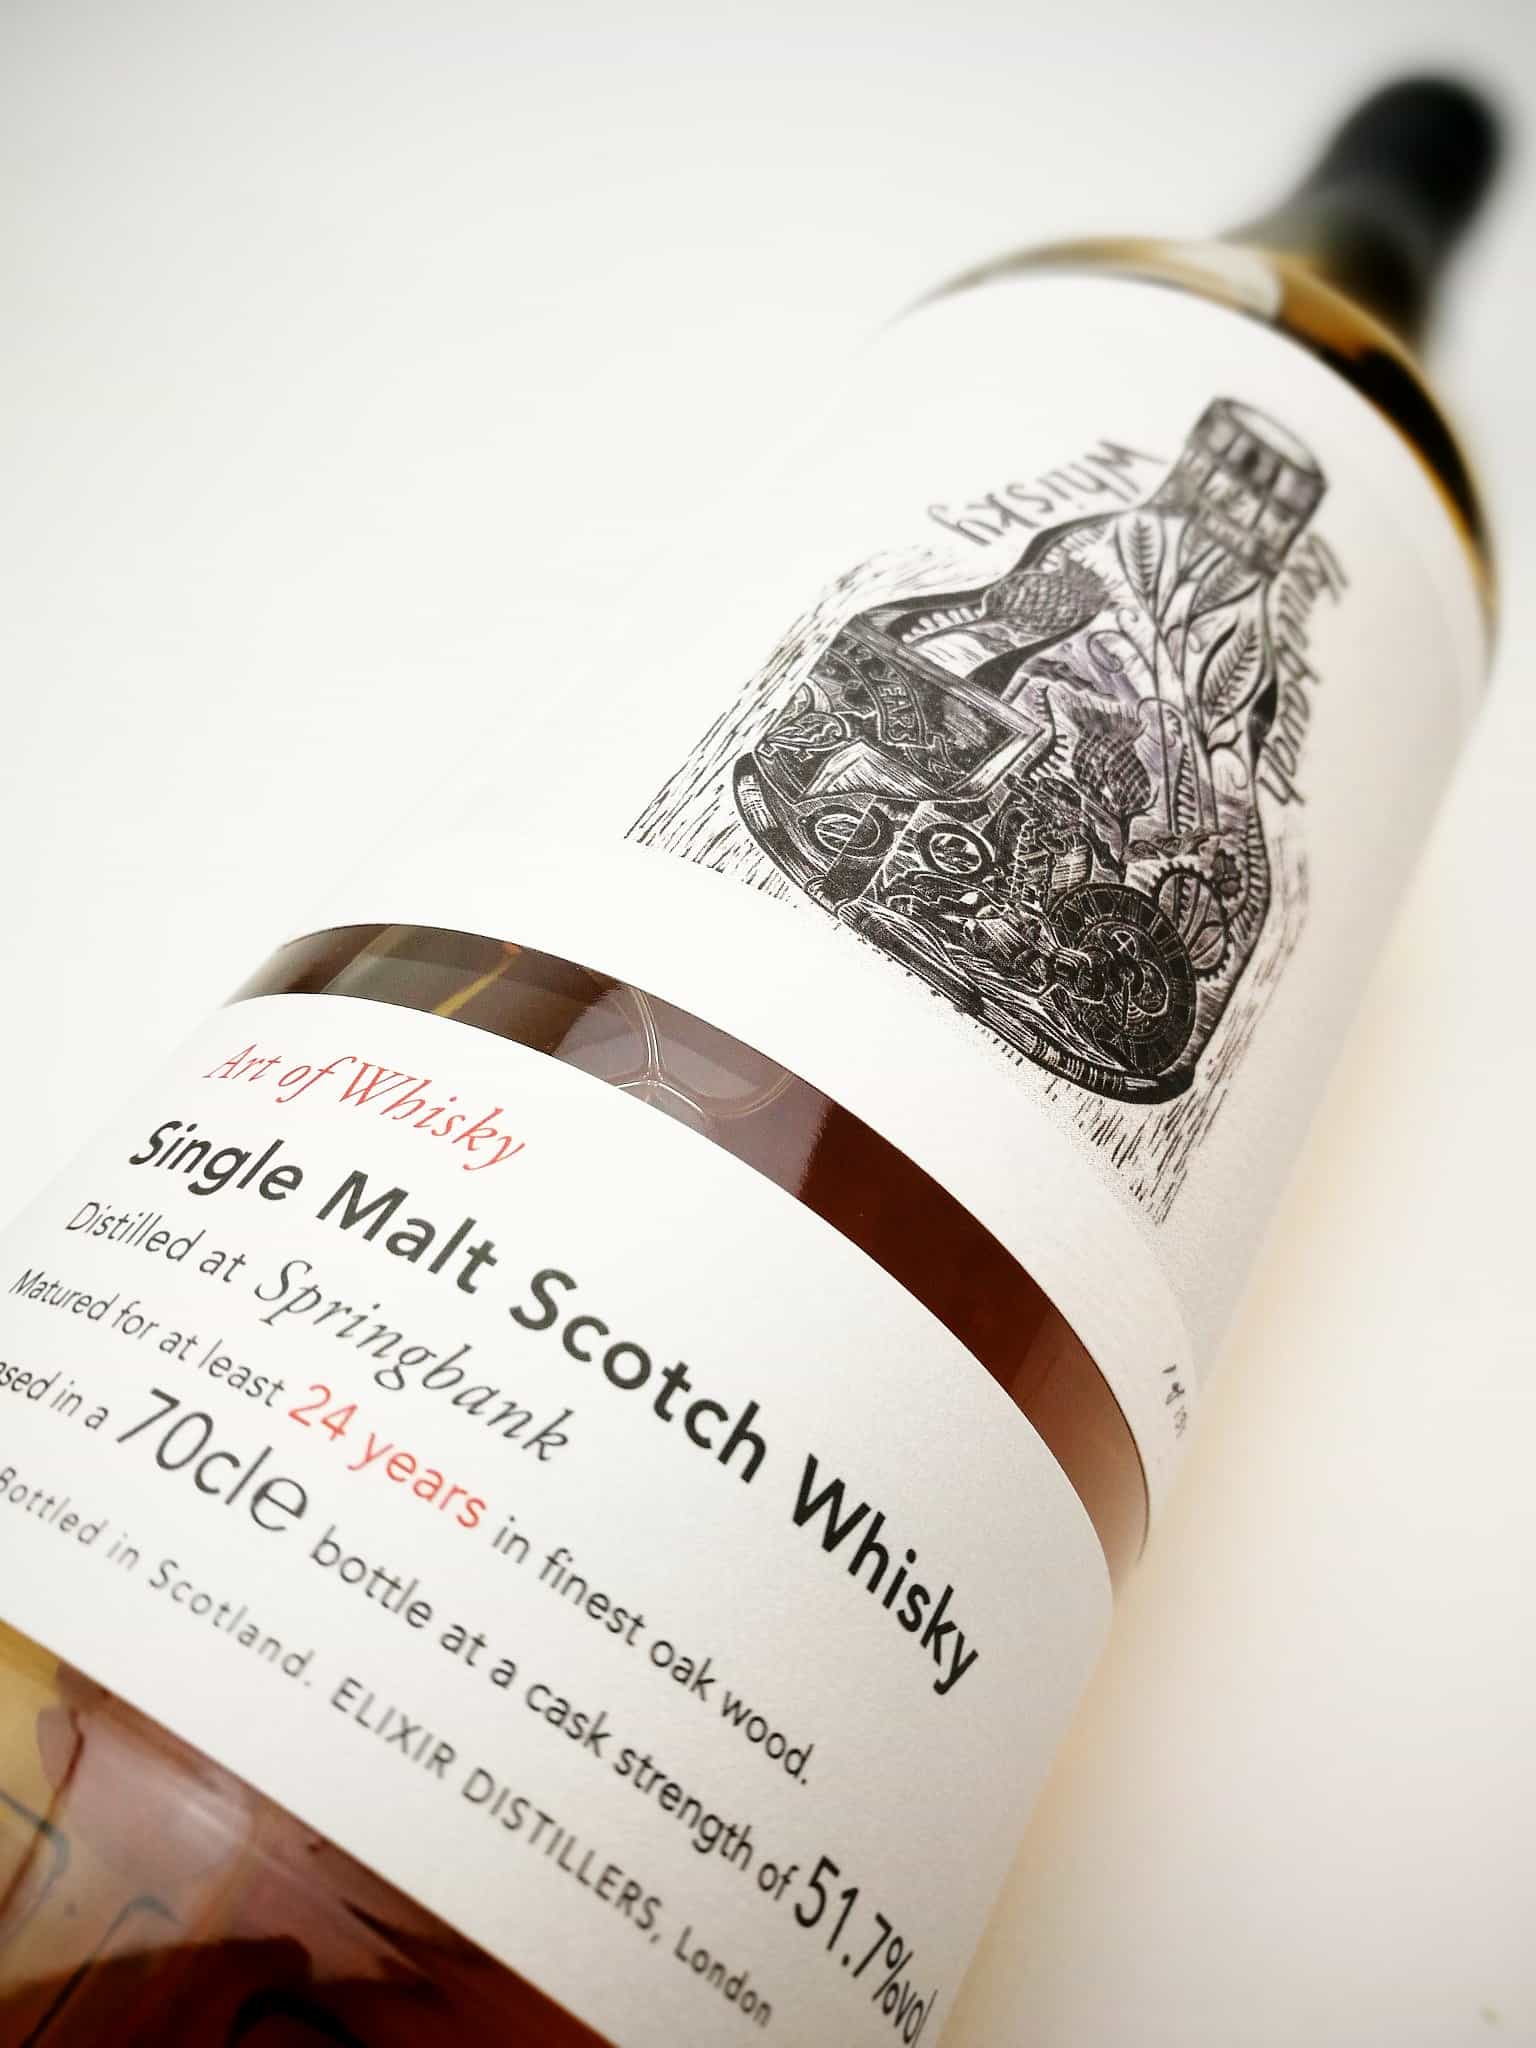 Springbank Whisky Exchange